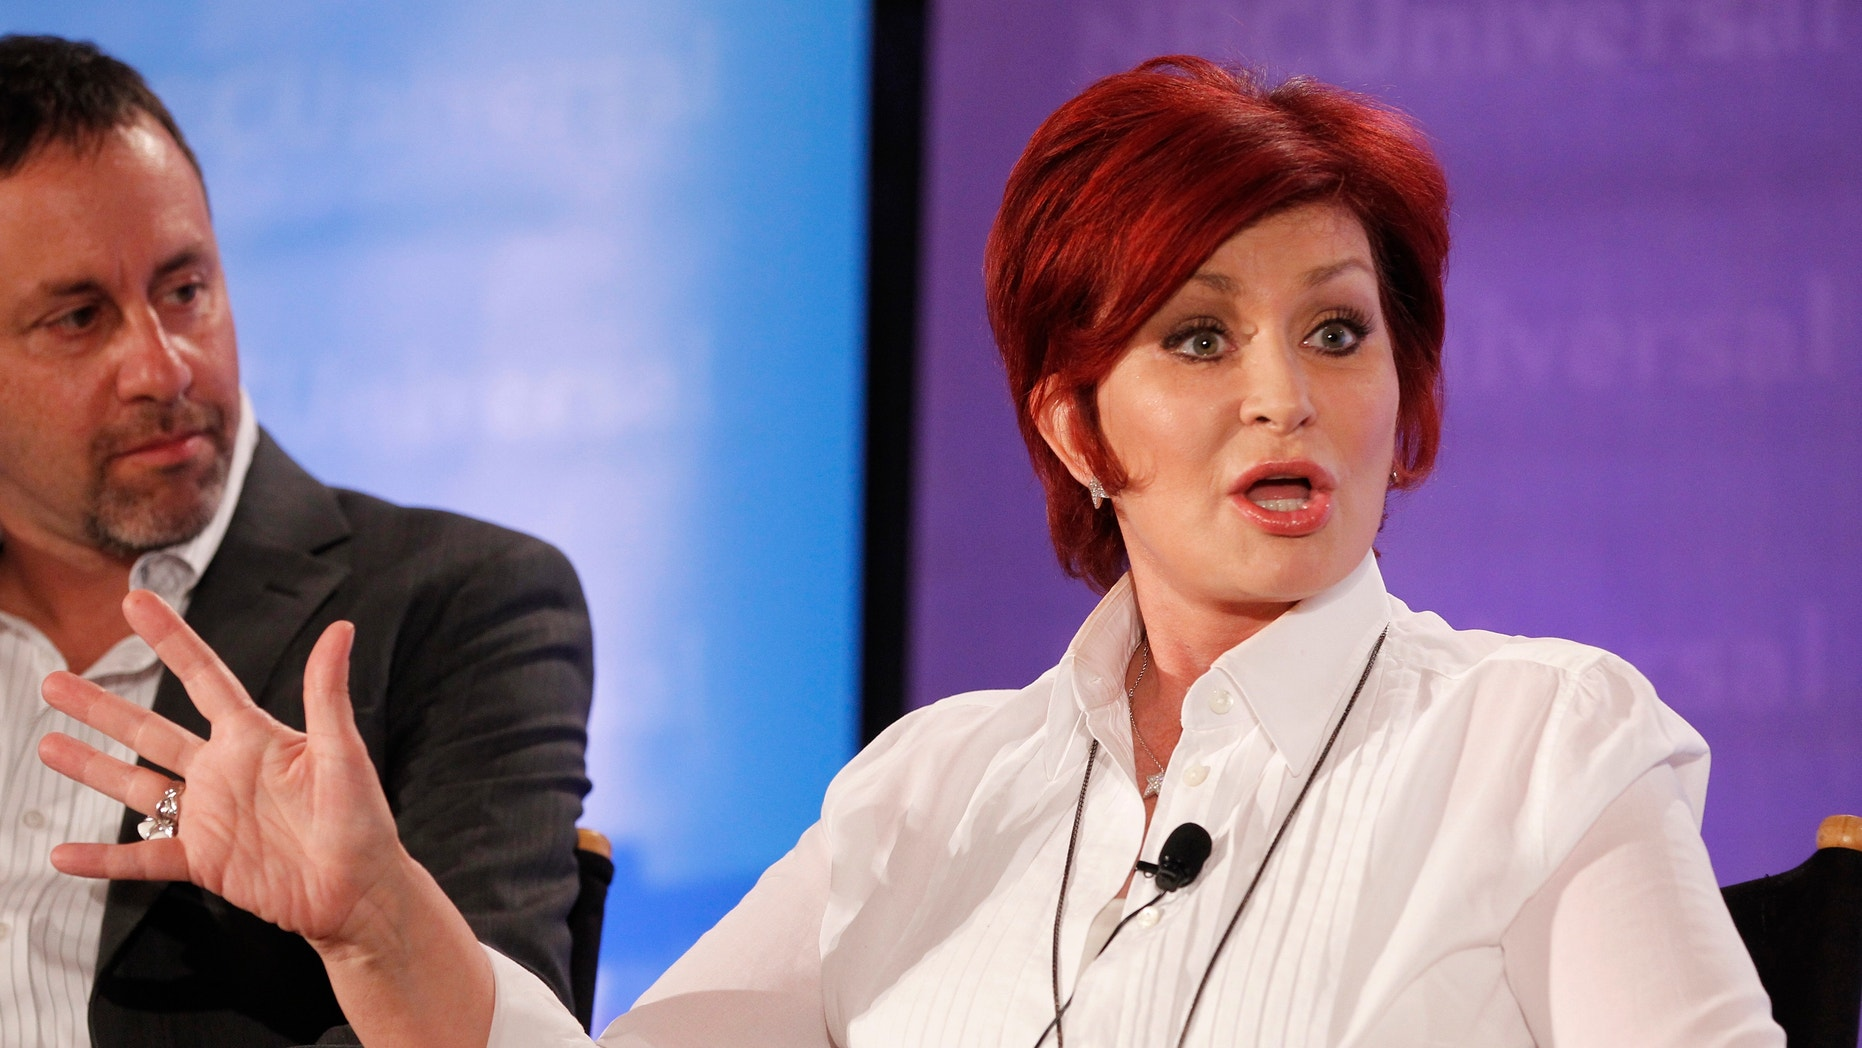 """Sharon Osbourne, one of the judges on """"America's Got Talent"""", takes part in a panel discussion at the NBC Universal Summer Press Day 2012."""